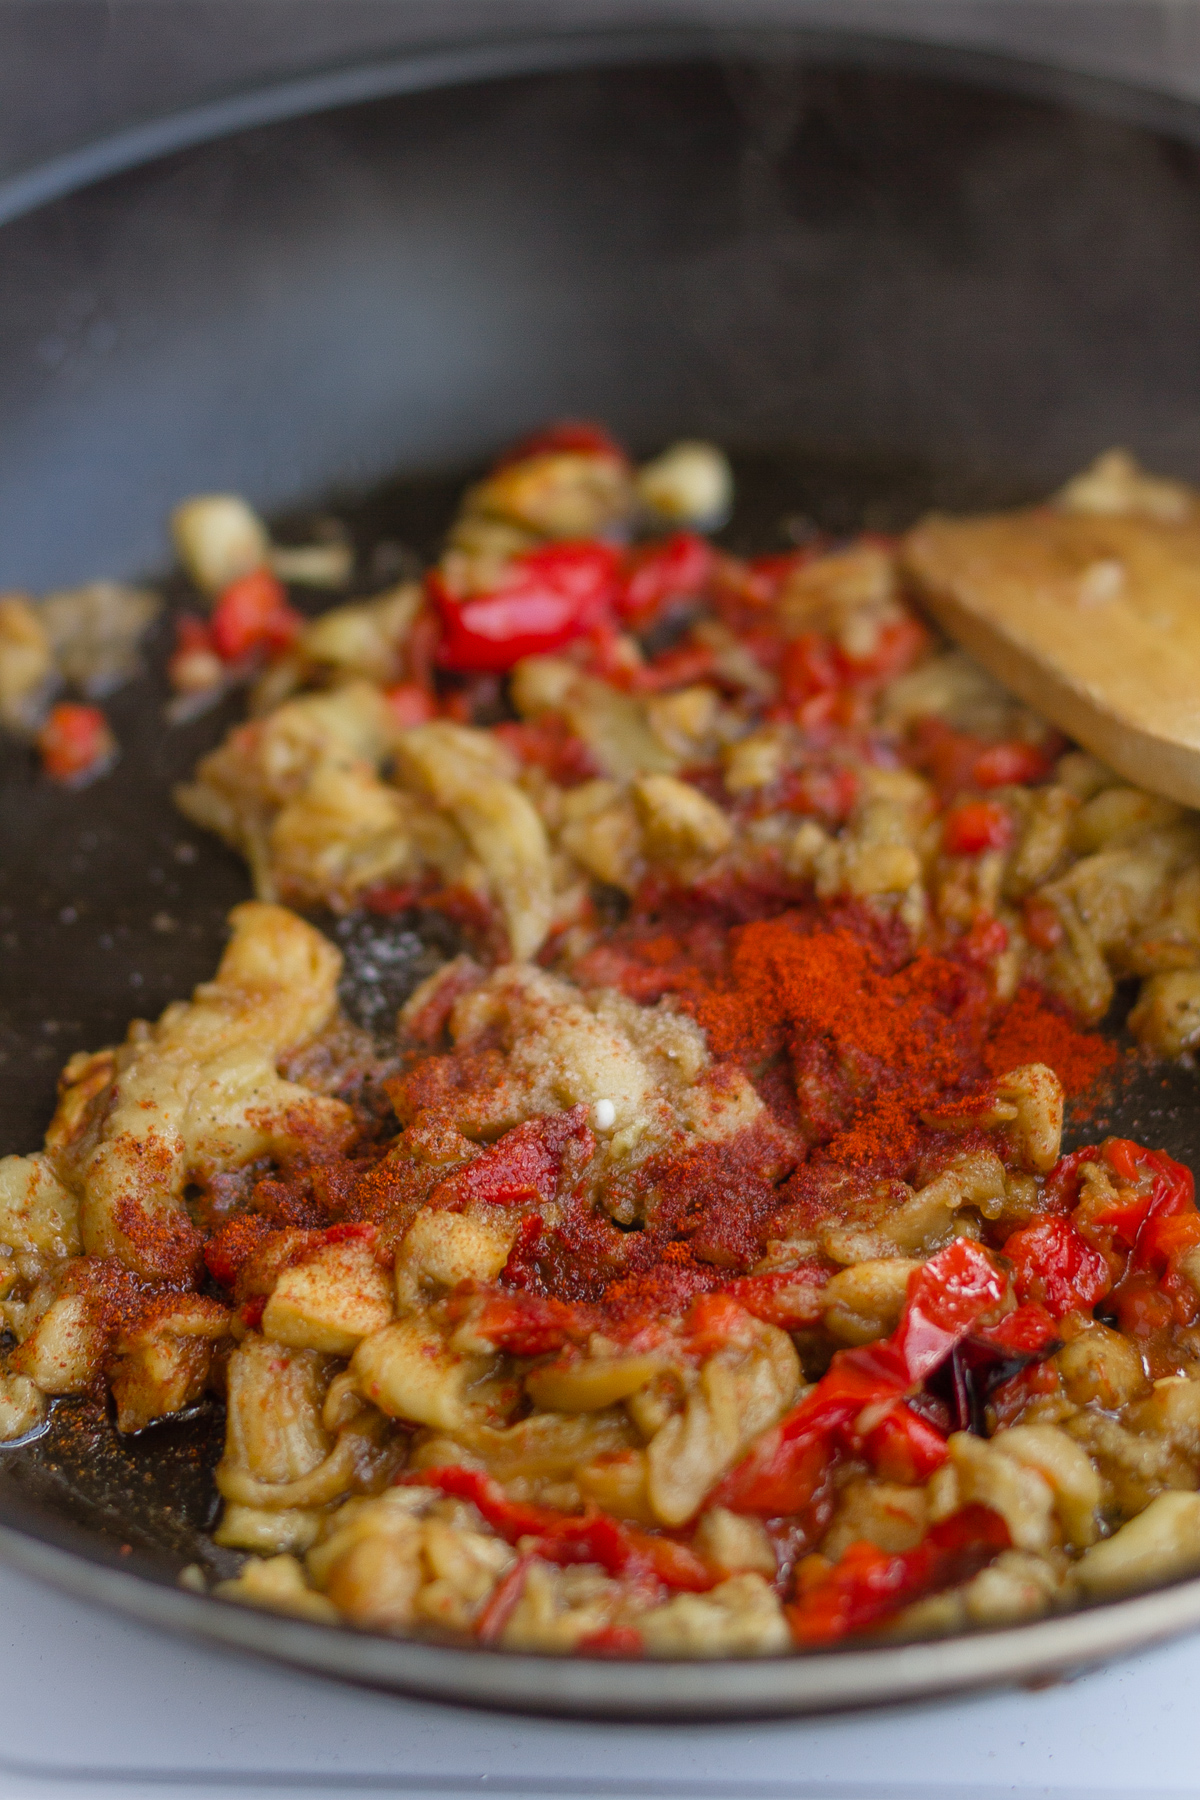 adding seasoning to the frying pan with the aubergine and red pepper